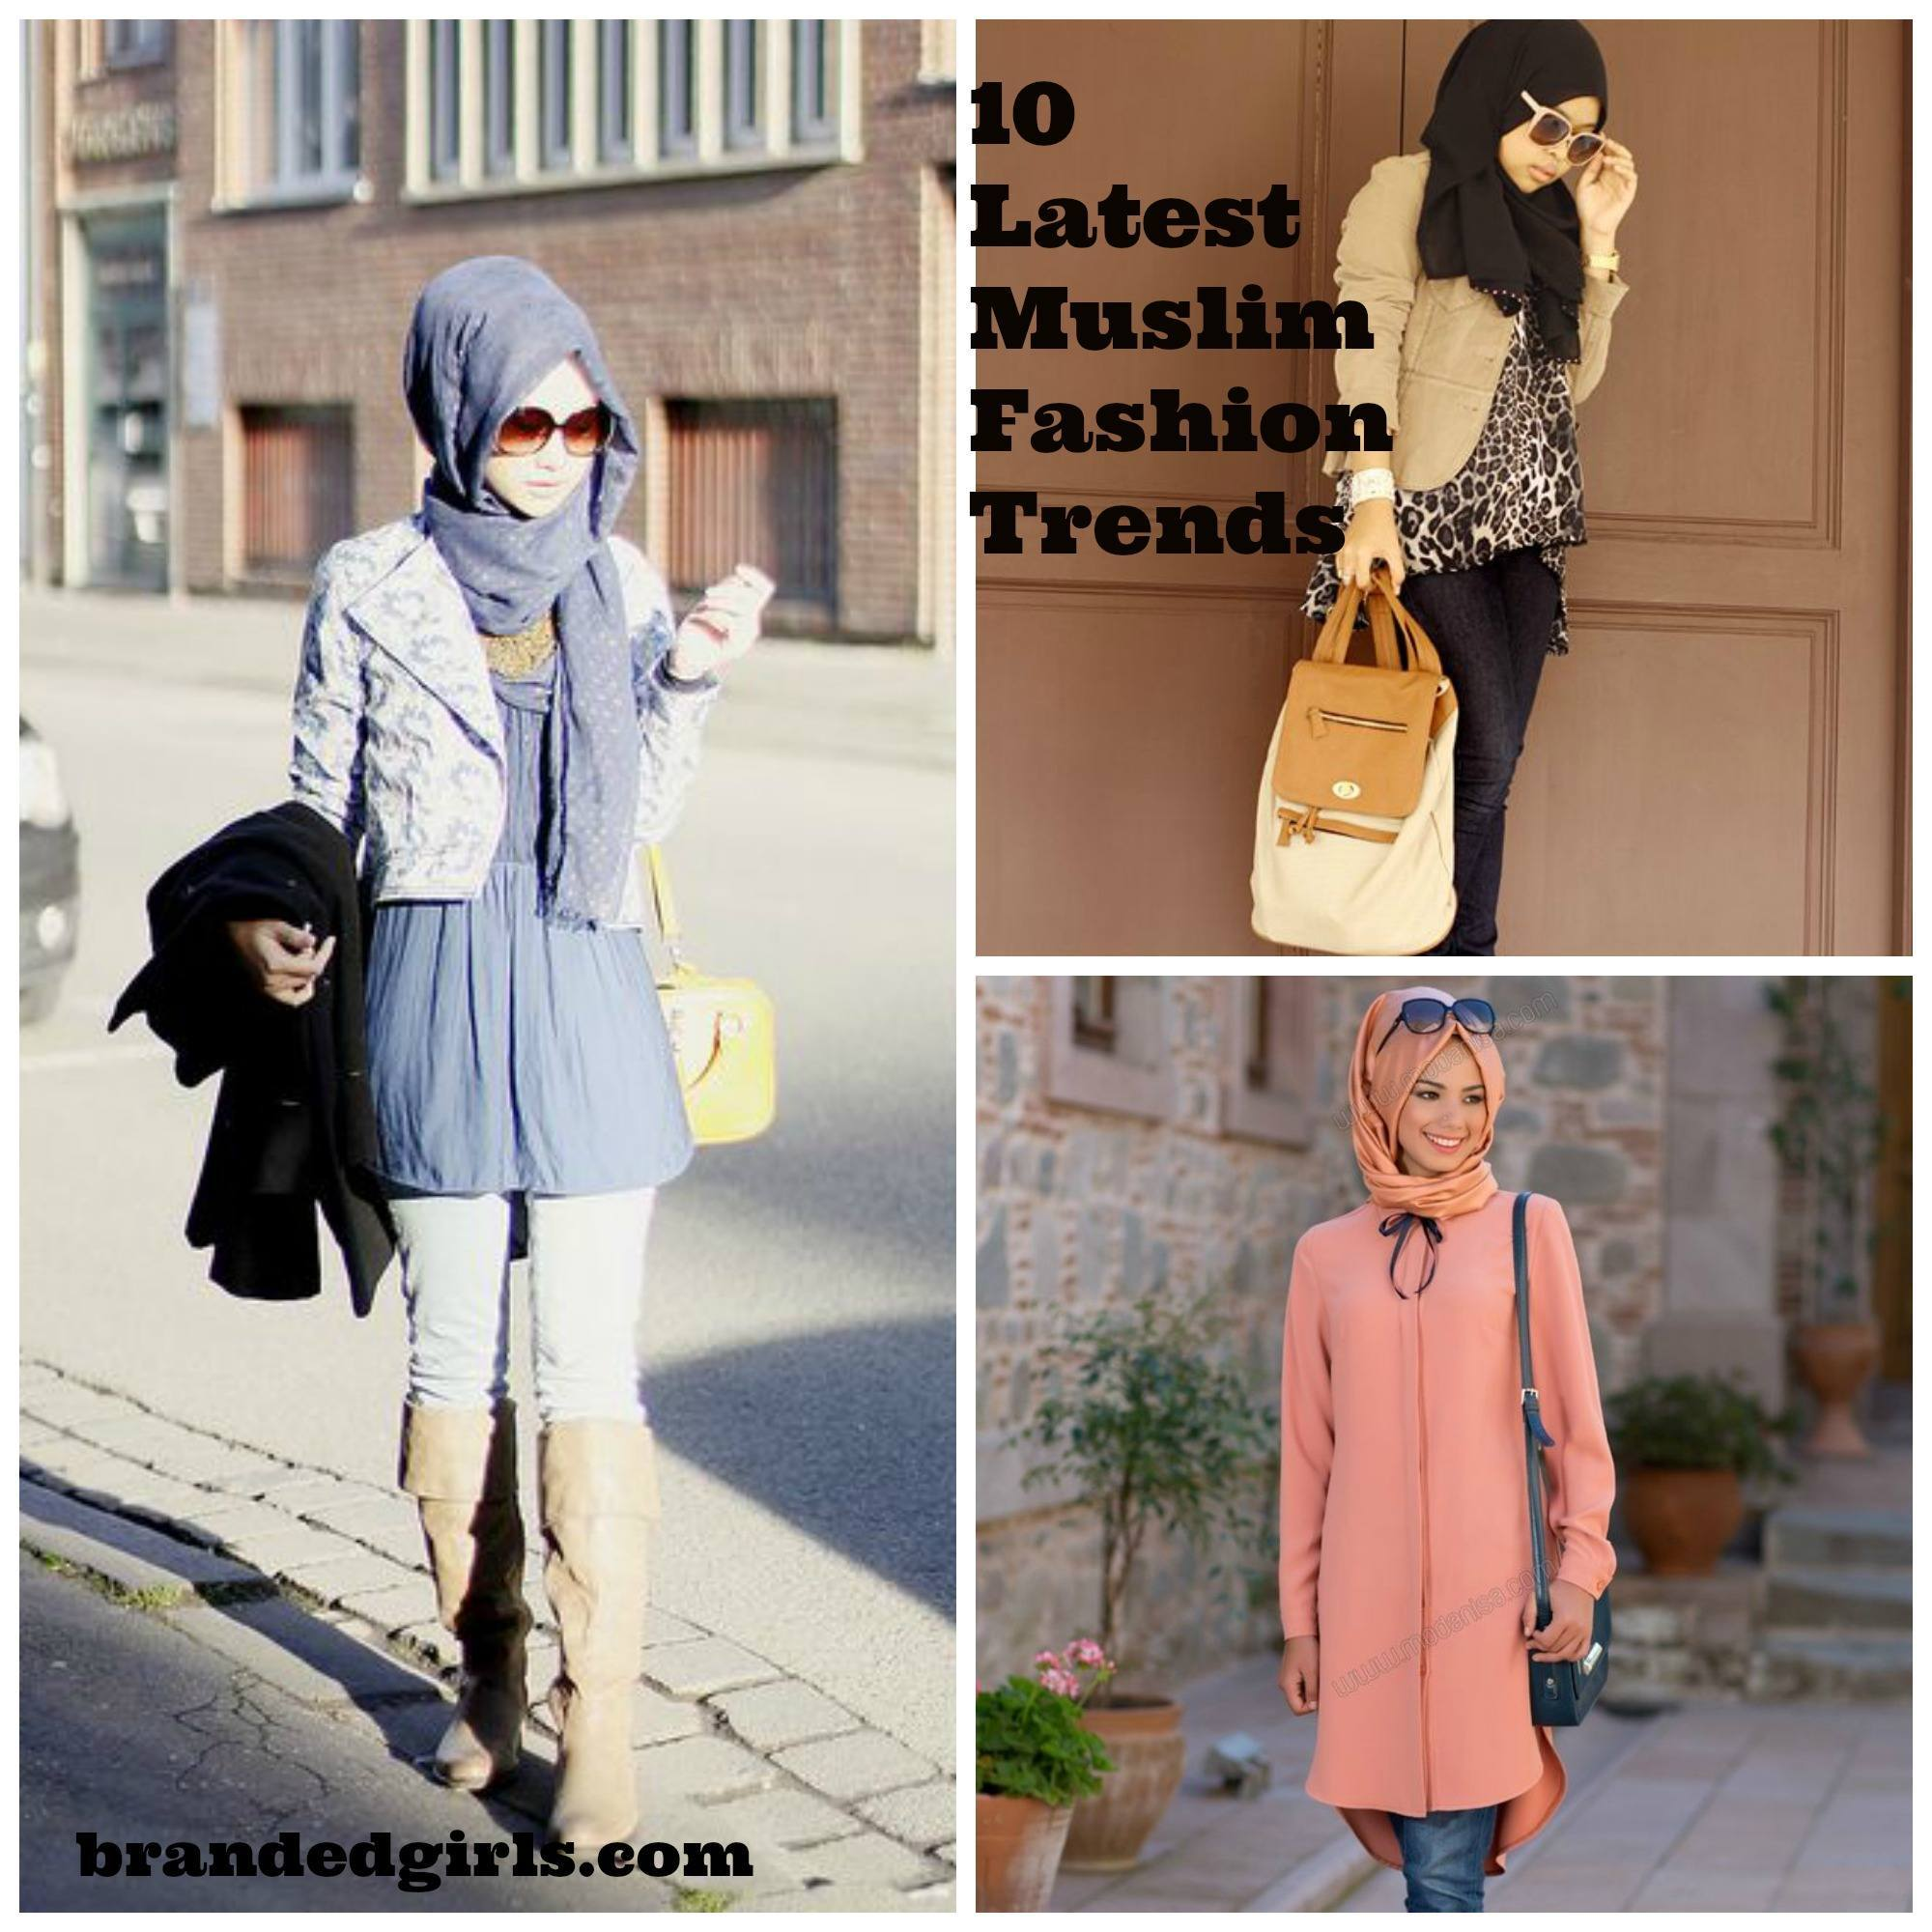 muslim-fashion-trends 10 Fashion Trends for Muslim Women to Follow this Year